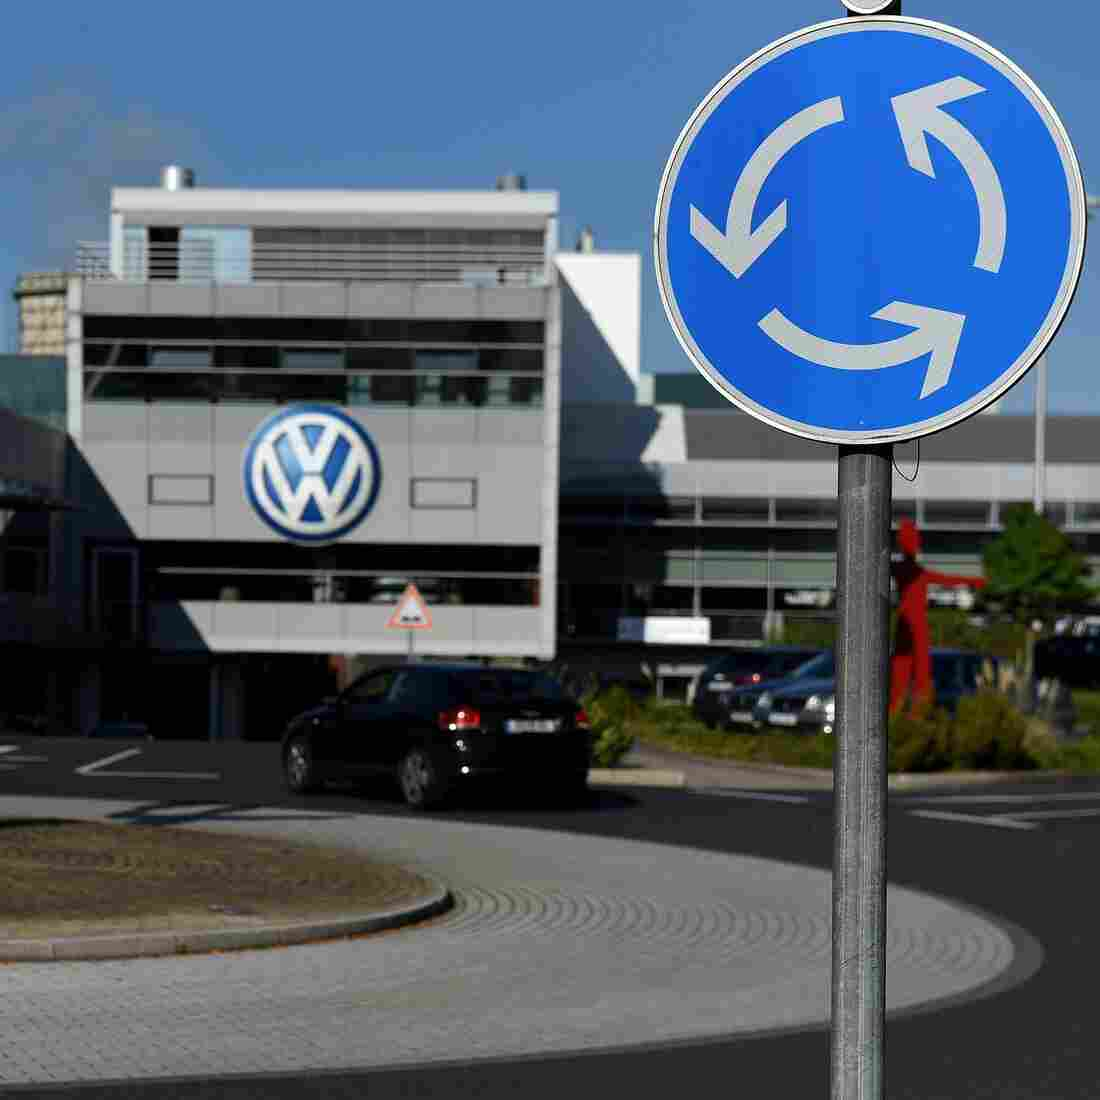 German carmaker Volkswagen says it has a plan to refit diesel cars that will make them comply with emissions standards. Here, the entrance to a VW branch in Duesseldorf, Germany, is seen on Monday.